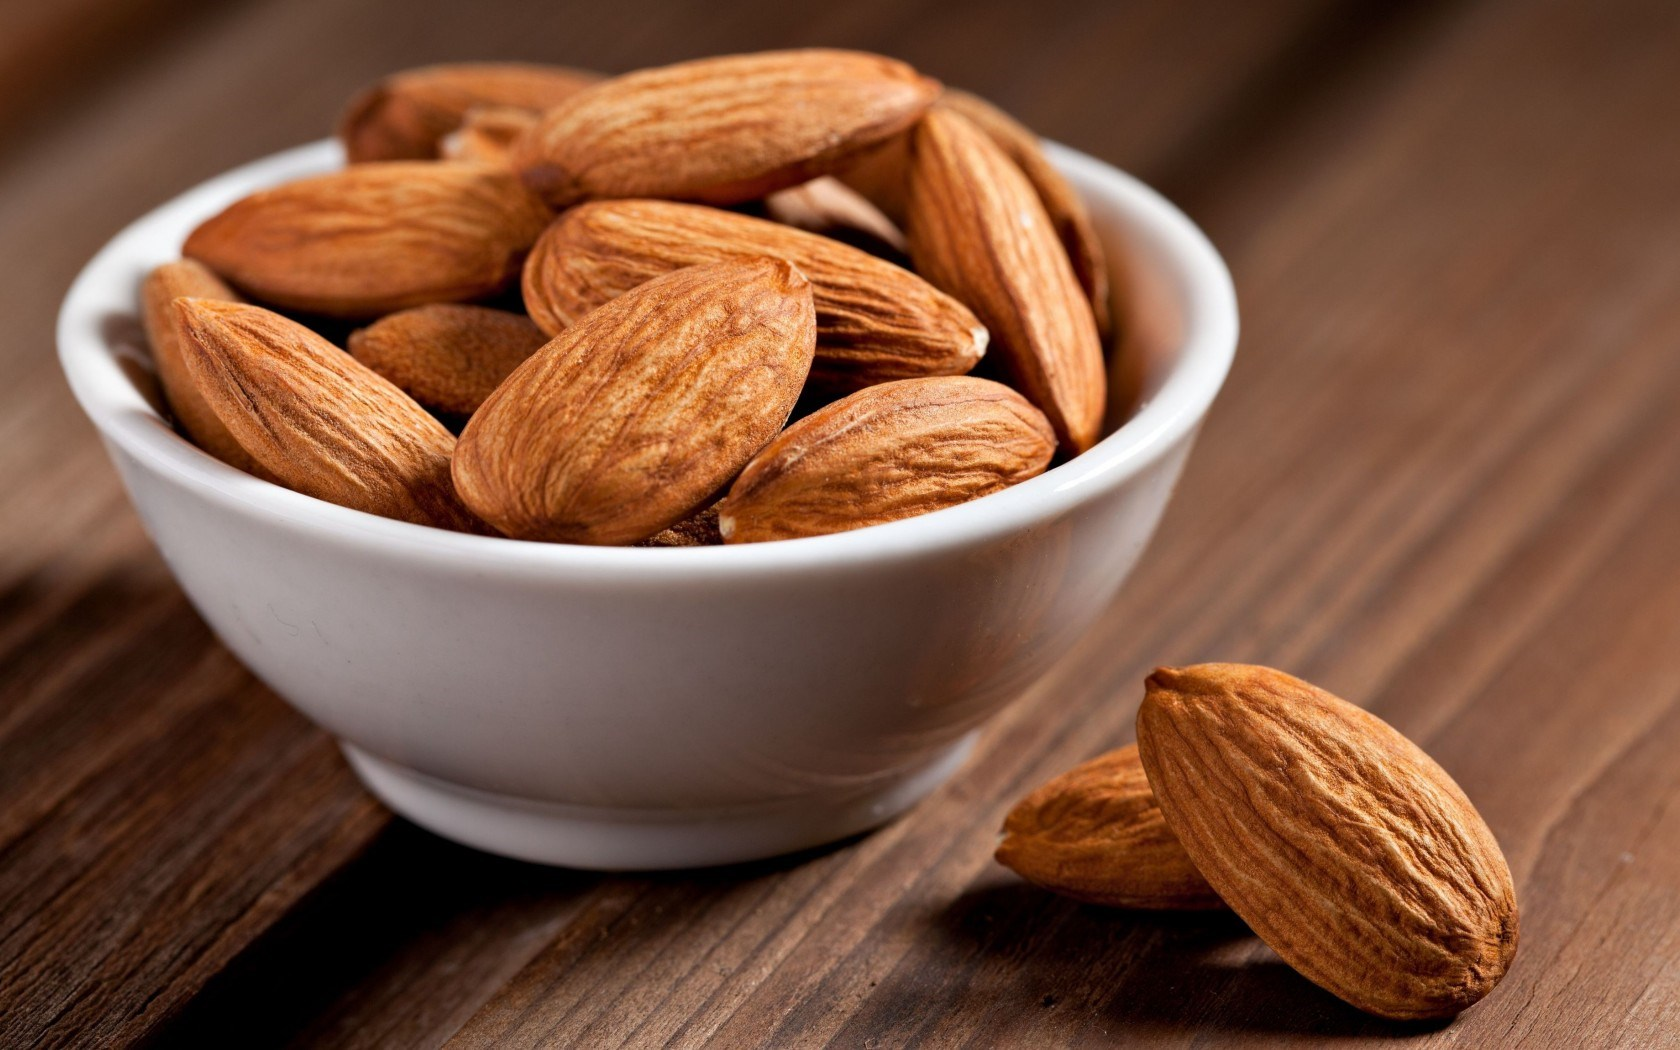 Food Almonds a Cup